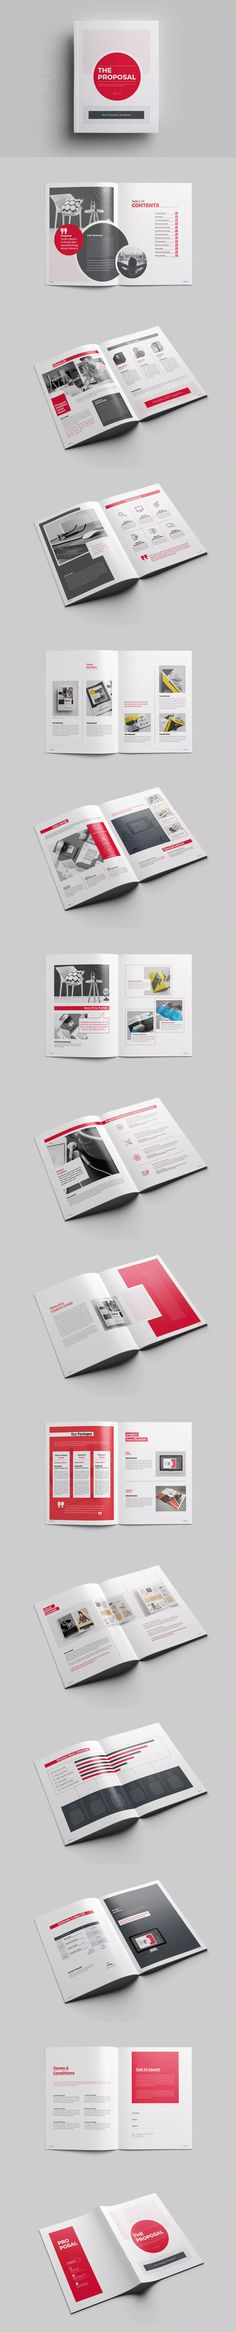 Proposal Template INDD Proposal Brochure Templates Pinterest - marriage proposal template